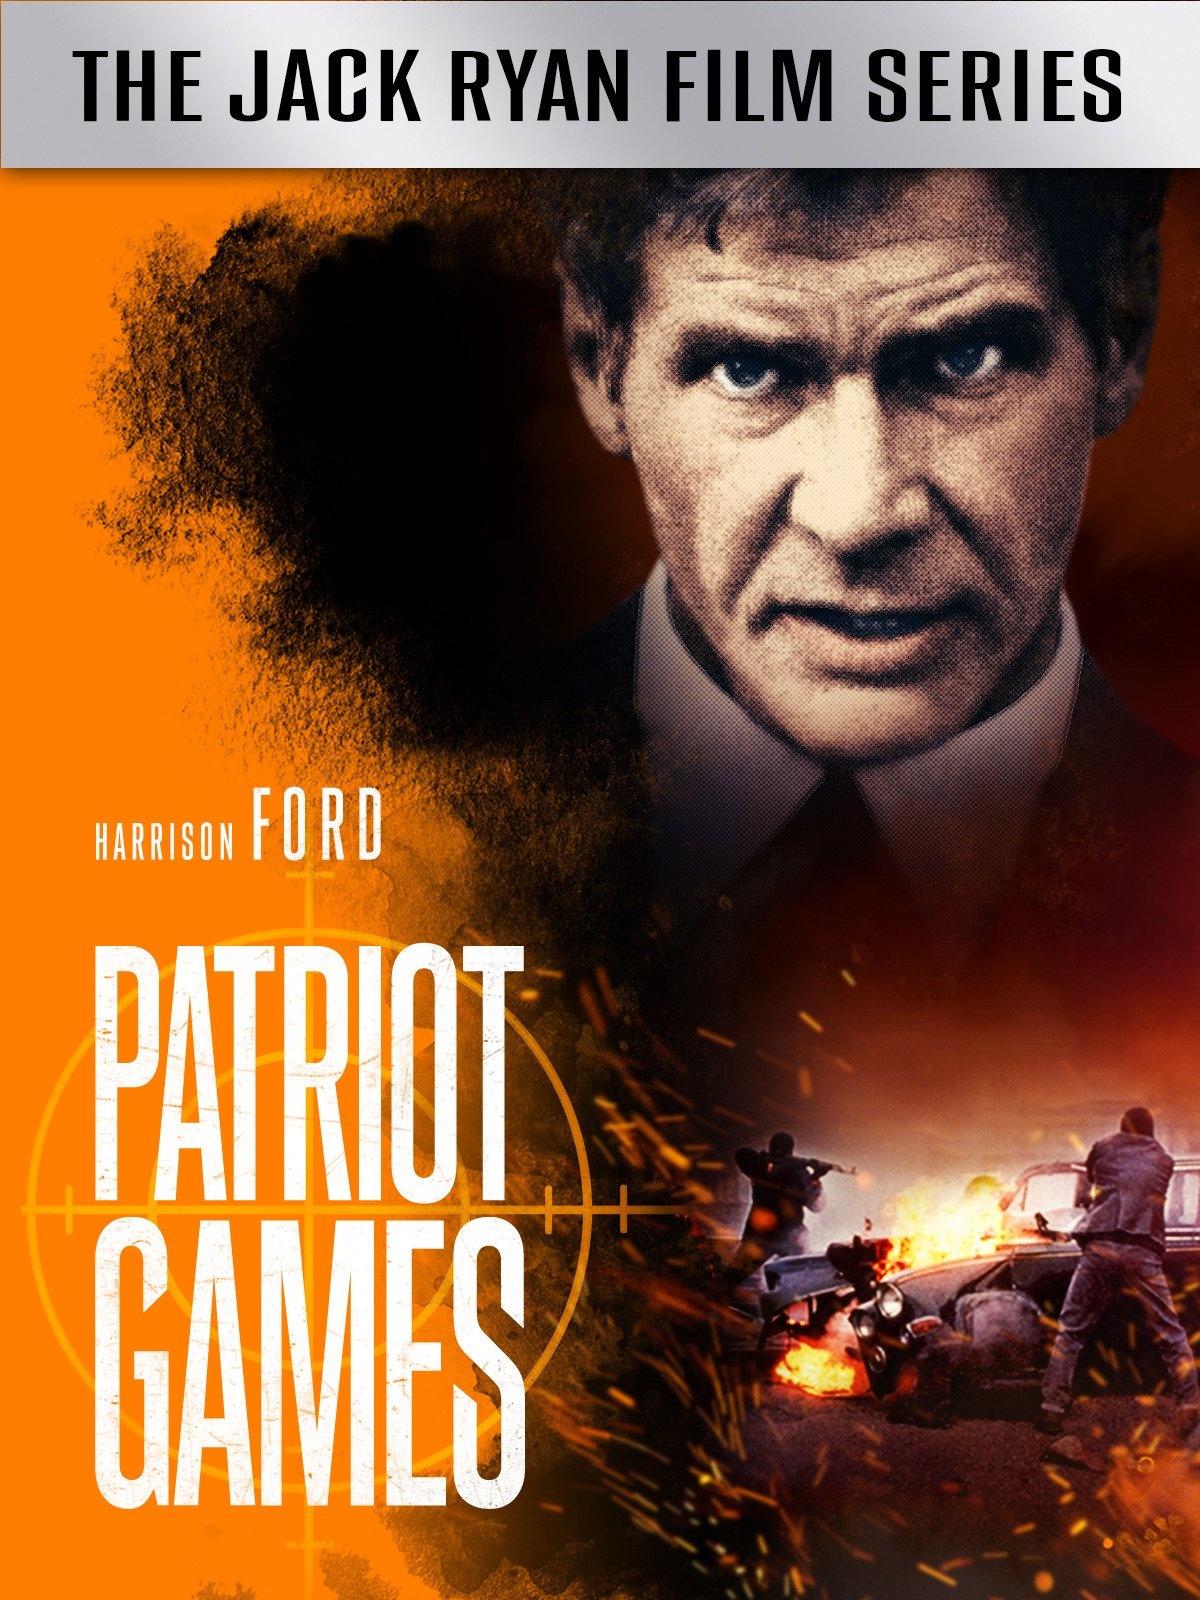 Harrison ford movies with sports betting wimbledon final betting preview